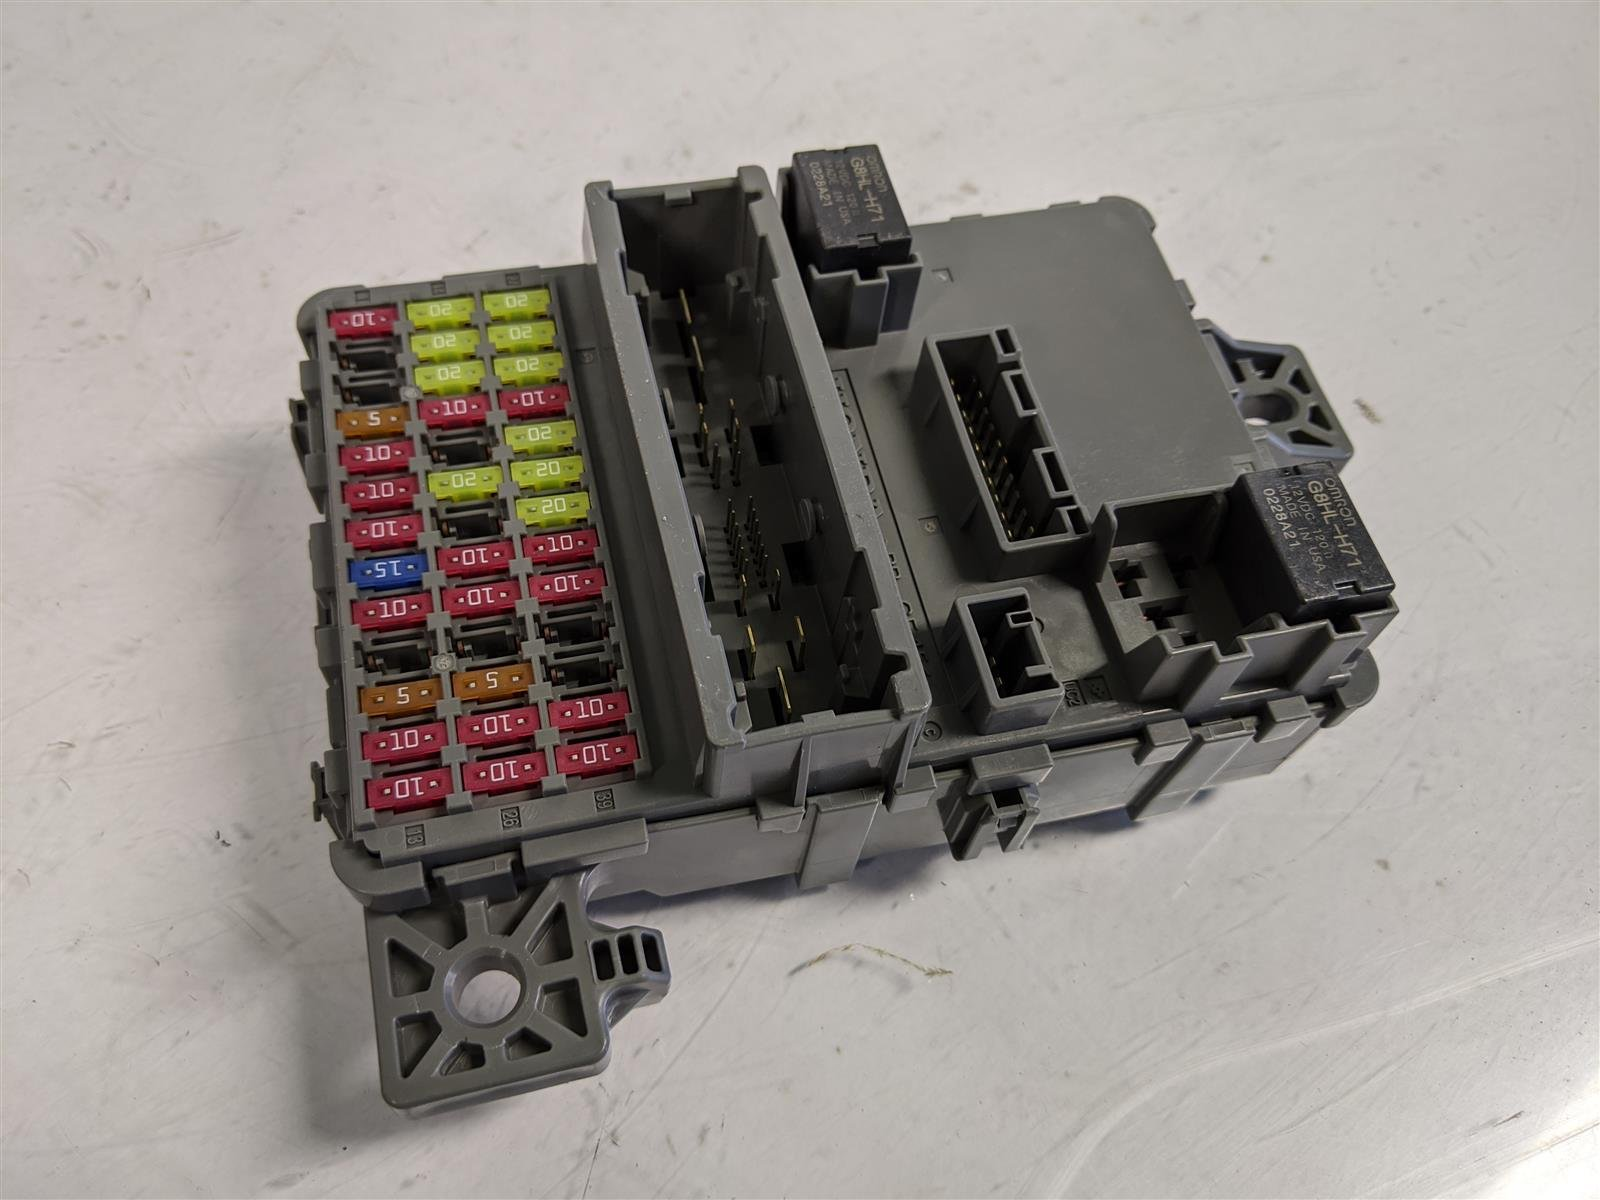 2018 Honda Civic Dash Fuse Box Replacement